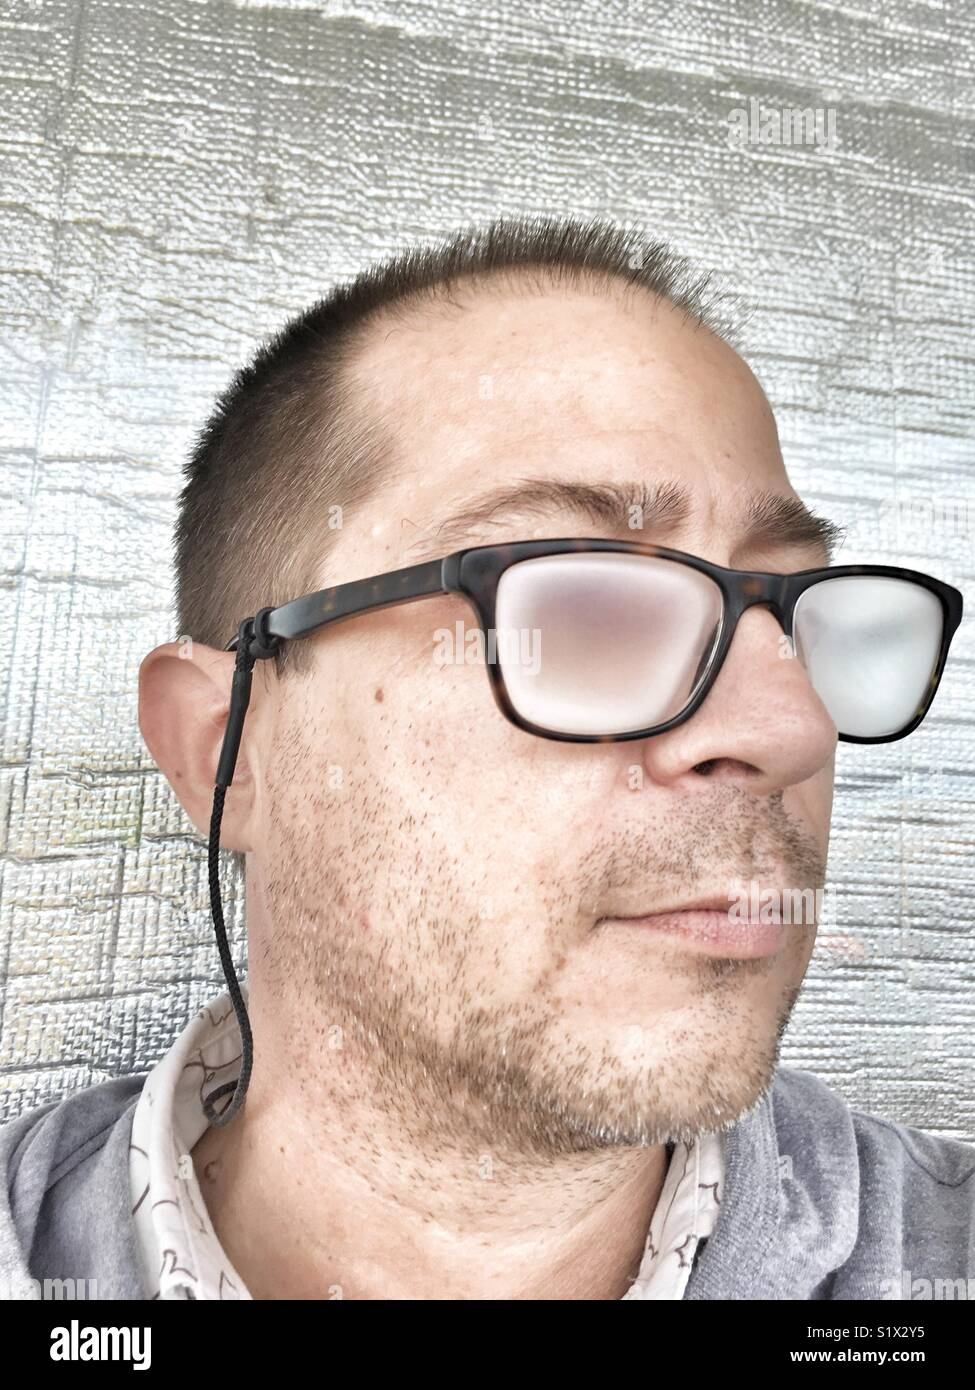 Portrait of a man, unshaven and wearing fogged up prescription glasses. - Stock Image